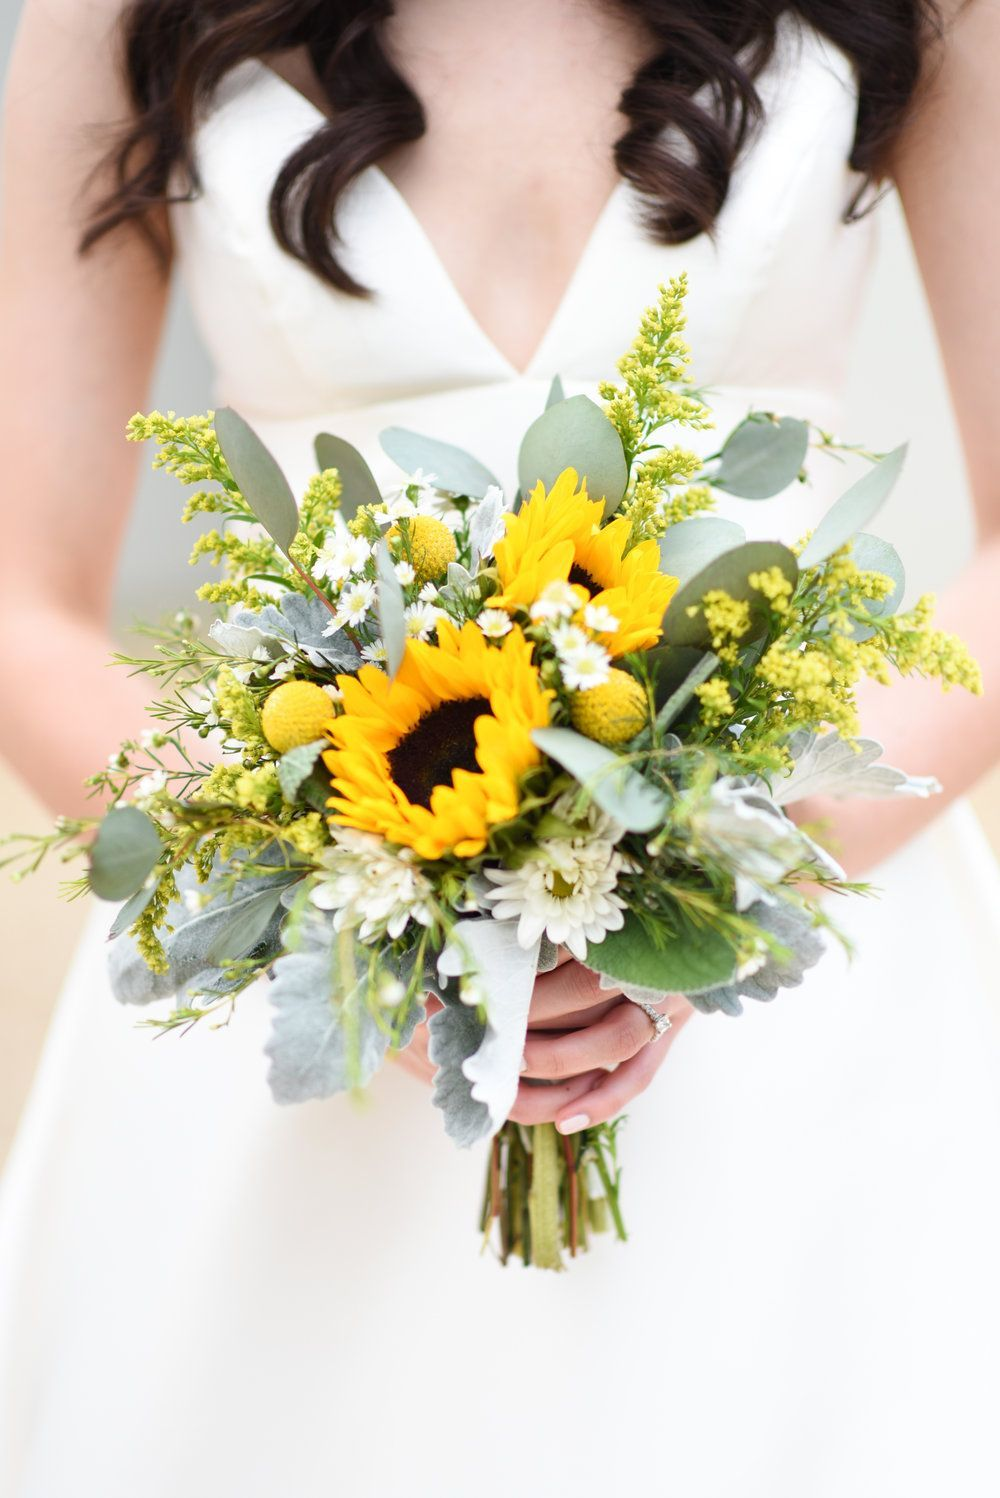 Bright pops of sunflowers in this beautiful summer bouquet